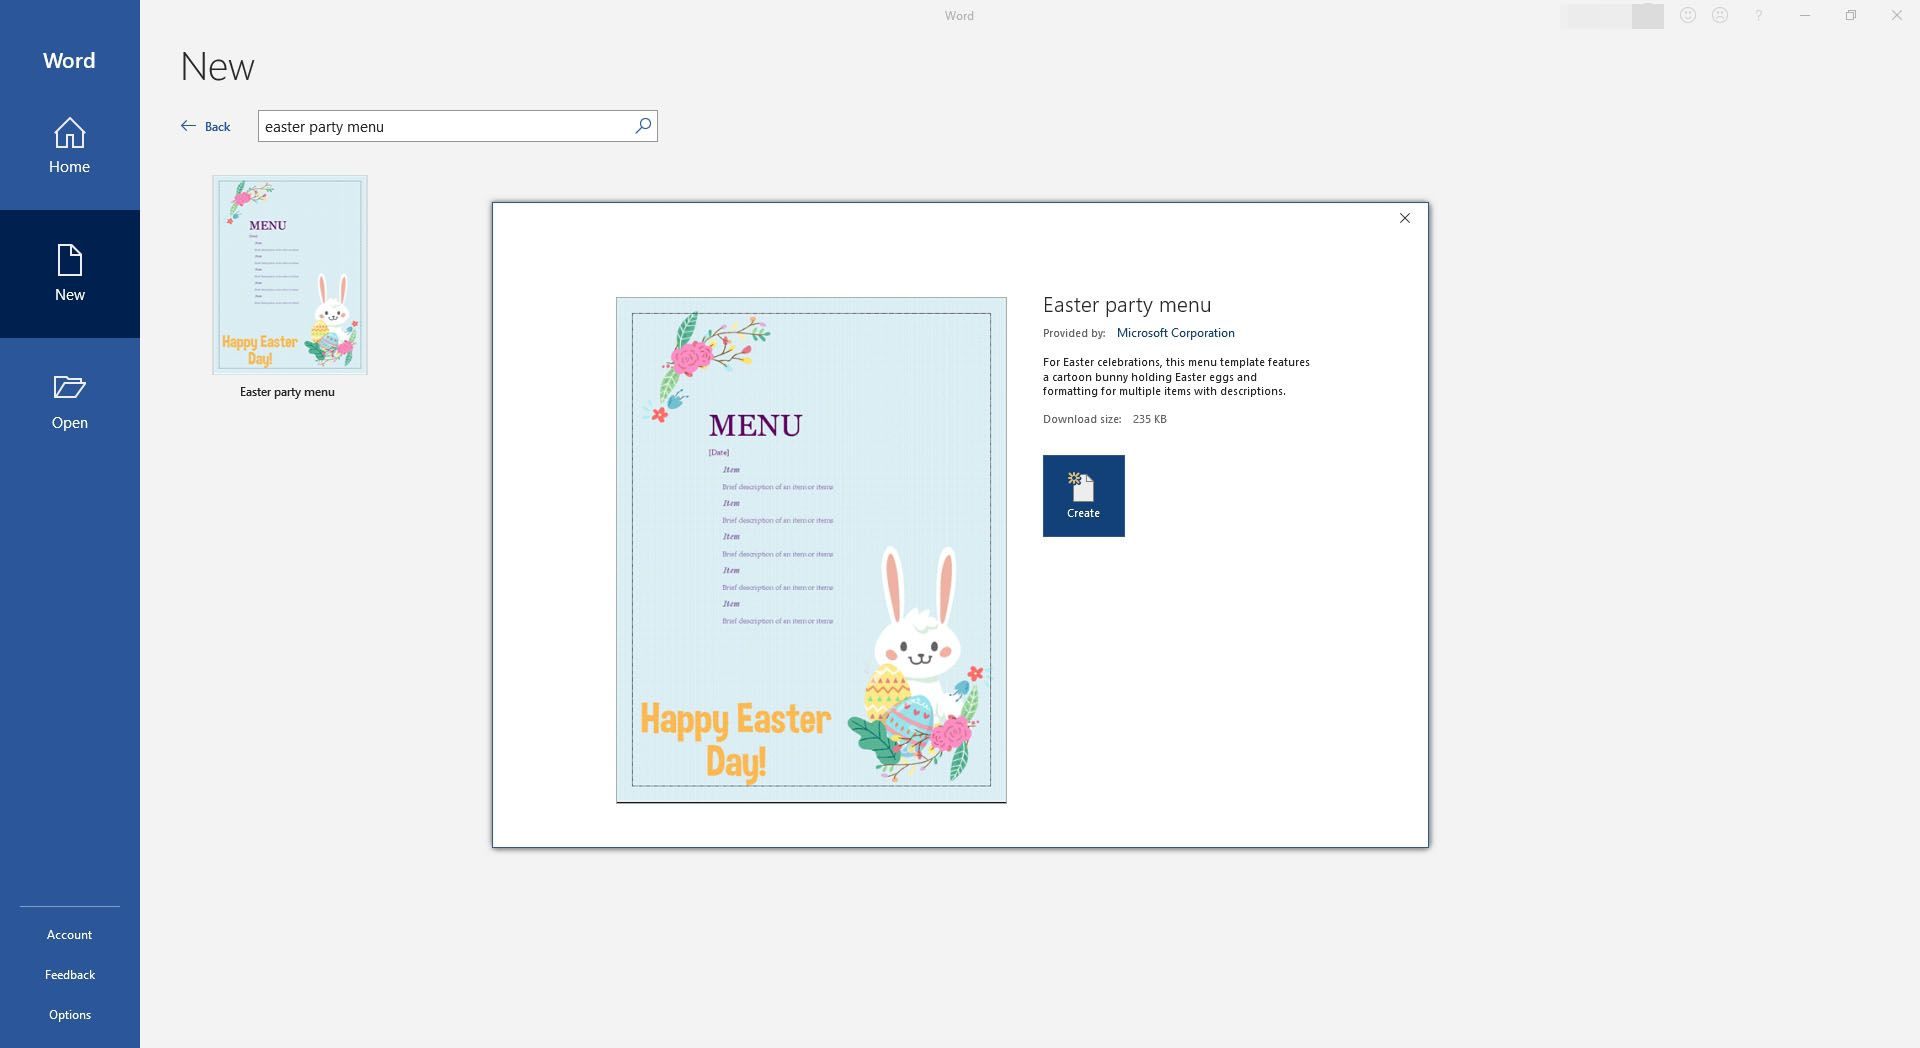 Fun Easter Bunny Dinner Party Menu Template for Microsoft Word